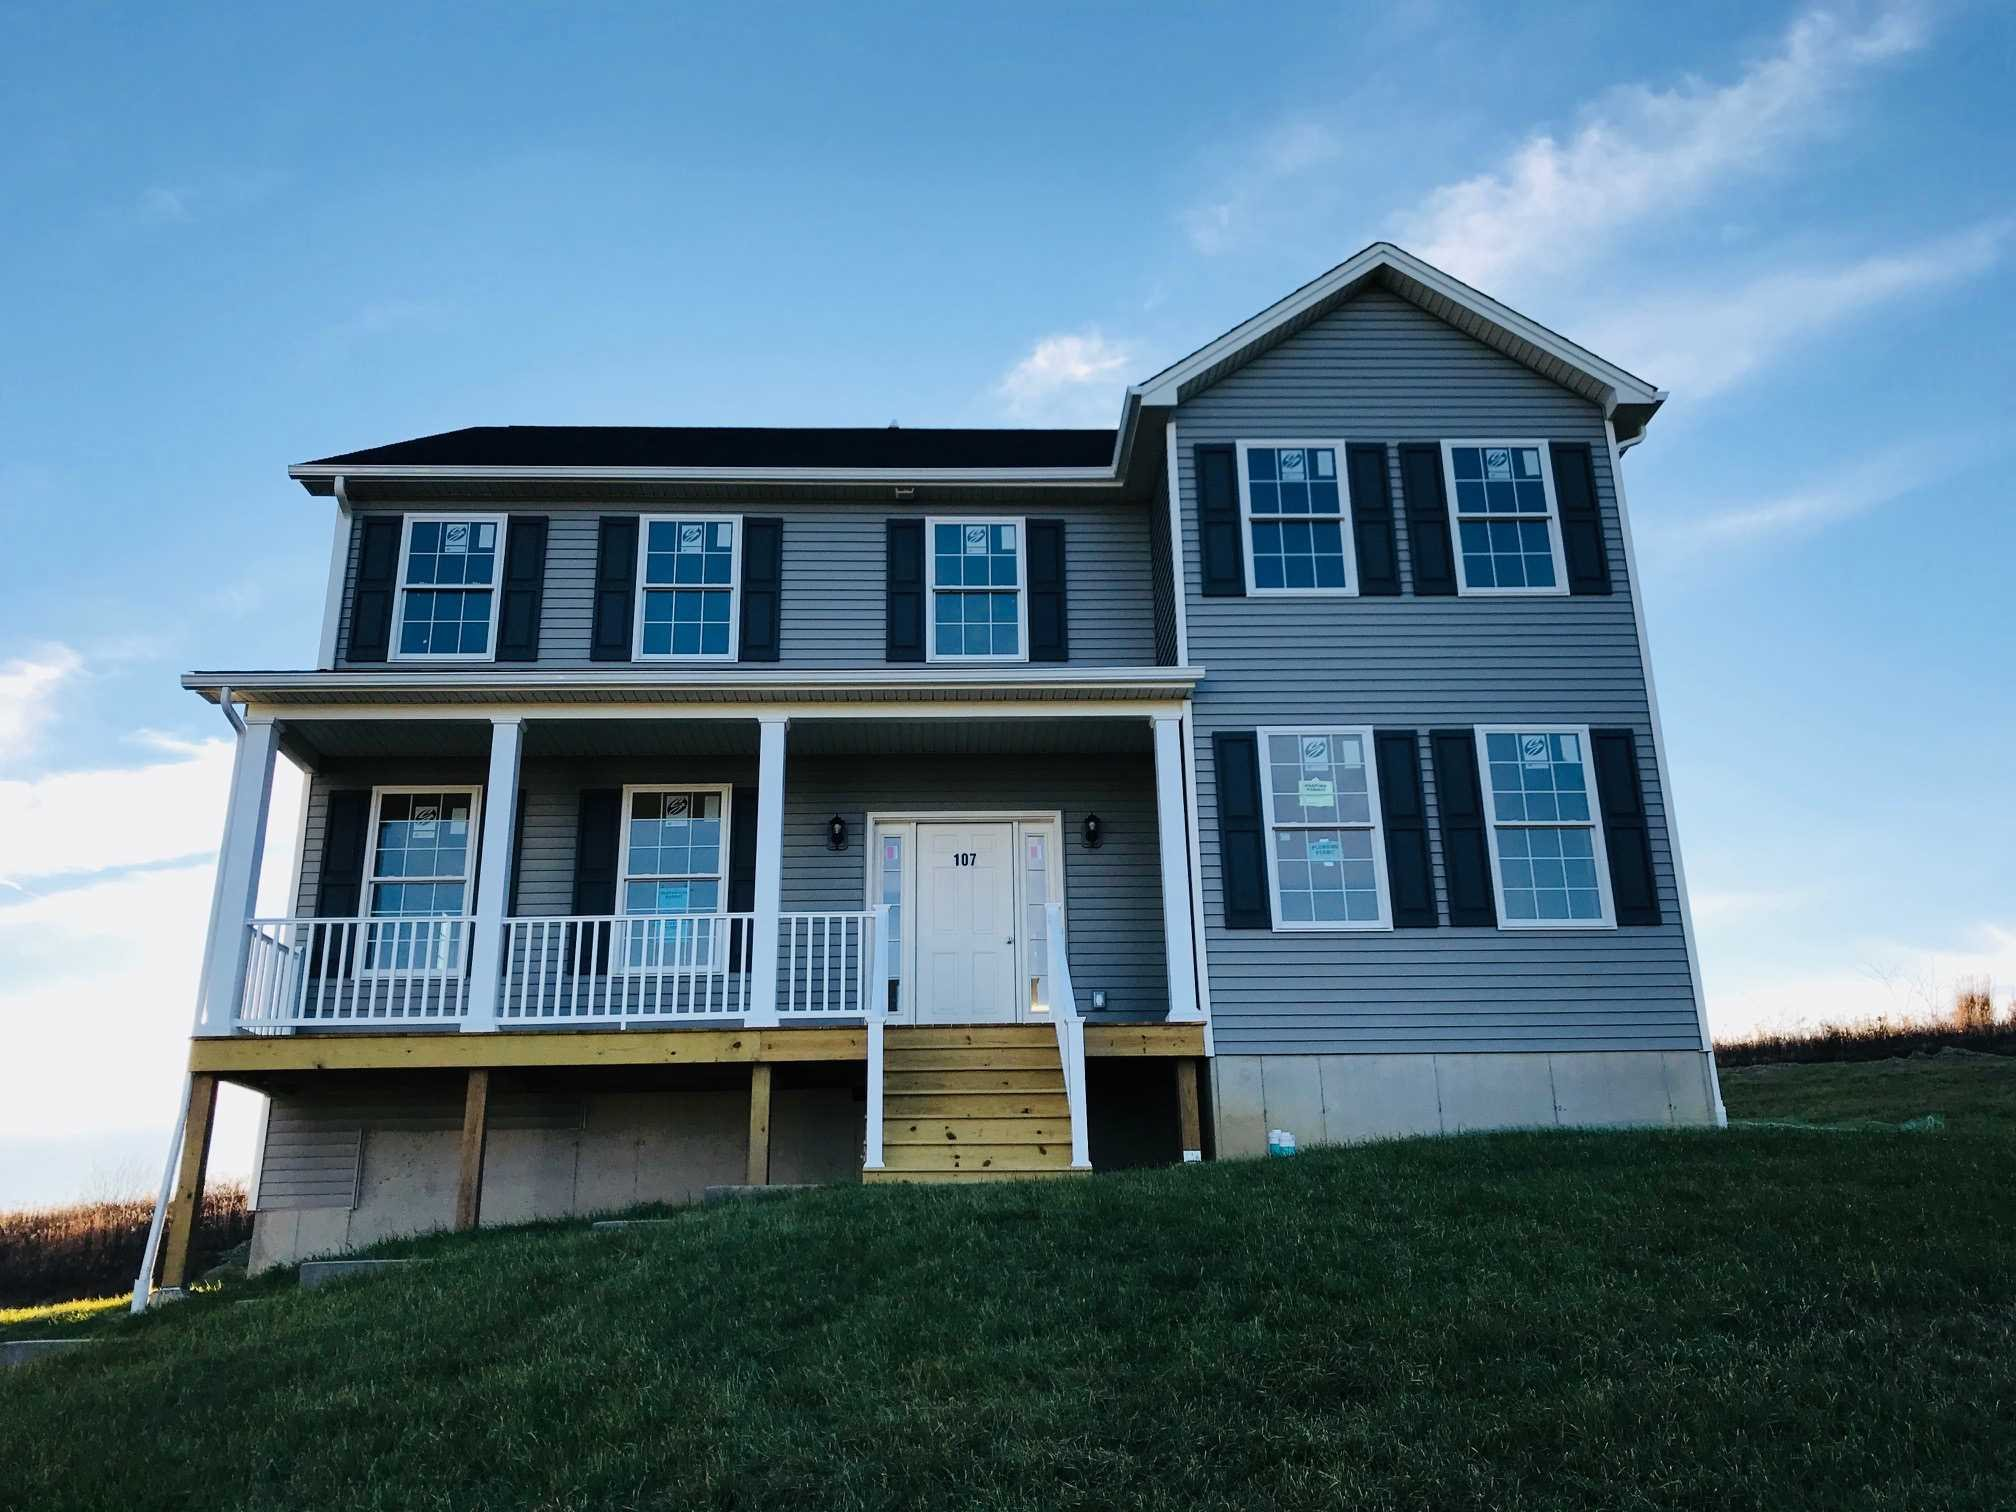 Single Family Home for Sale at 111 STRATFORD LOT 122 Drive 111 STRATFORD LOT 122 Drive Poughkeepsie, New York 12603 United States